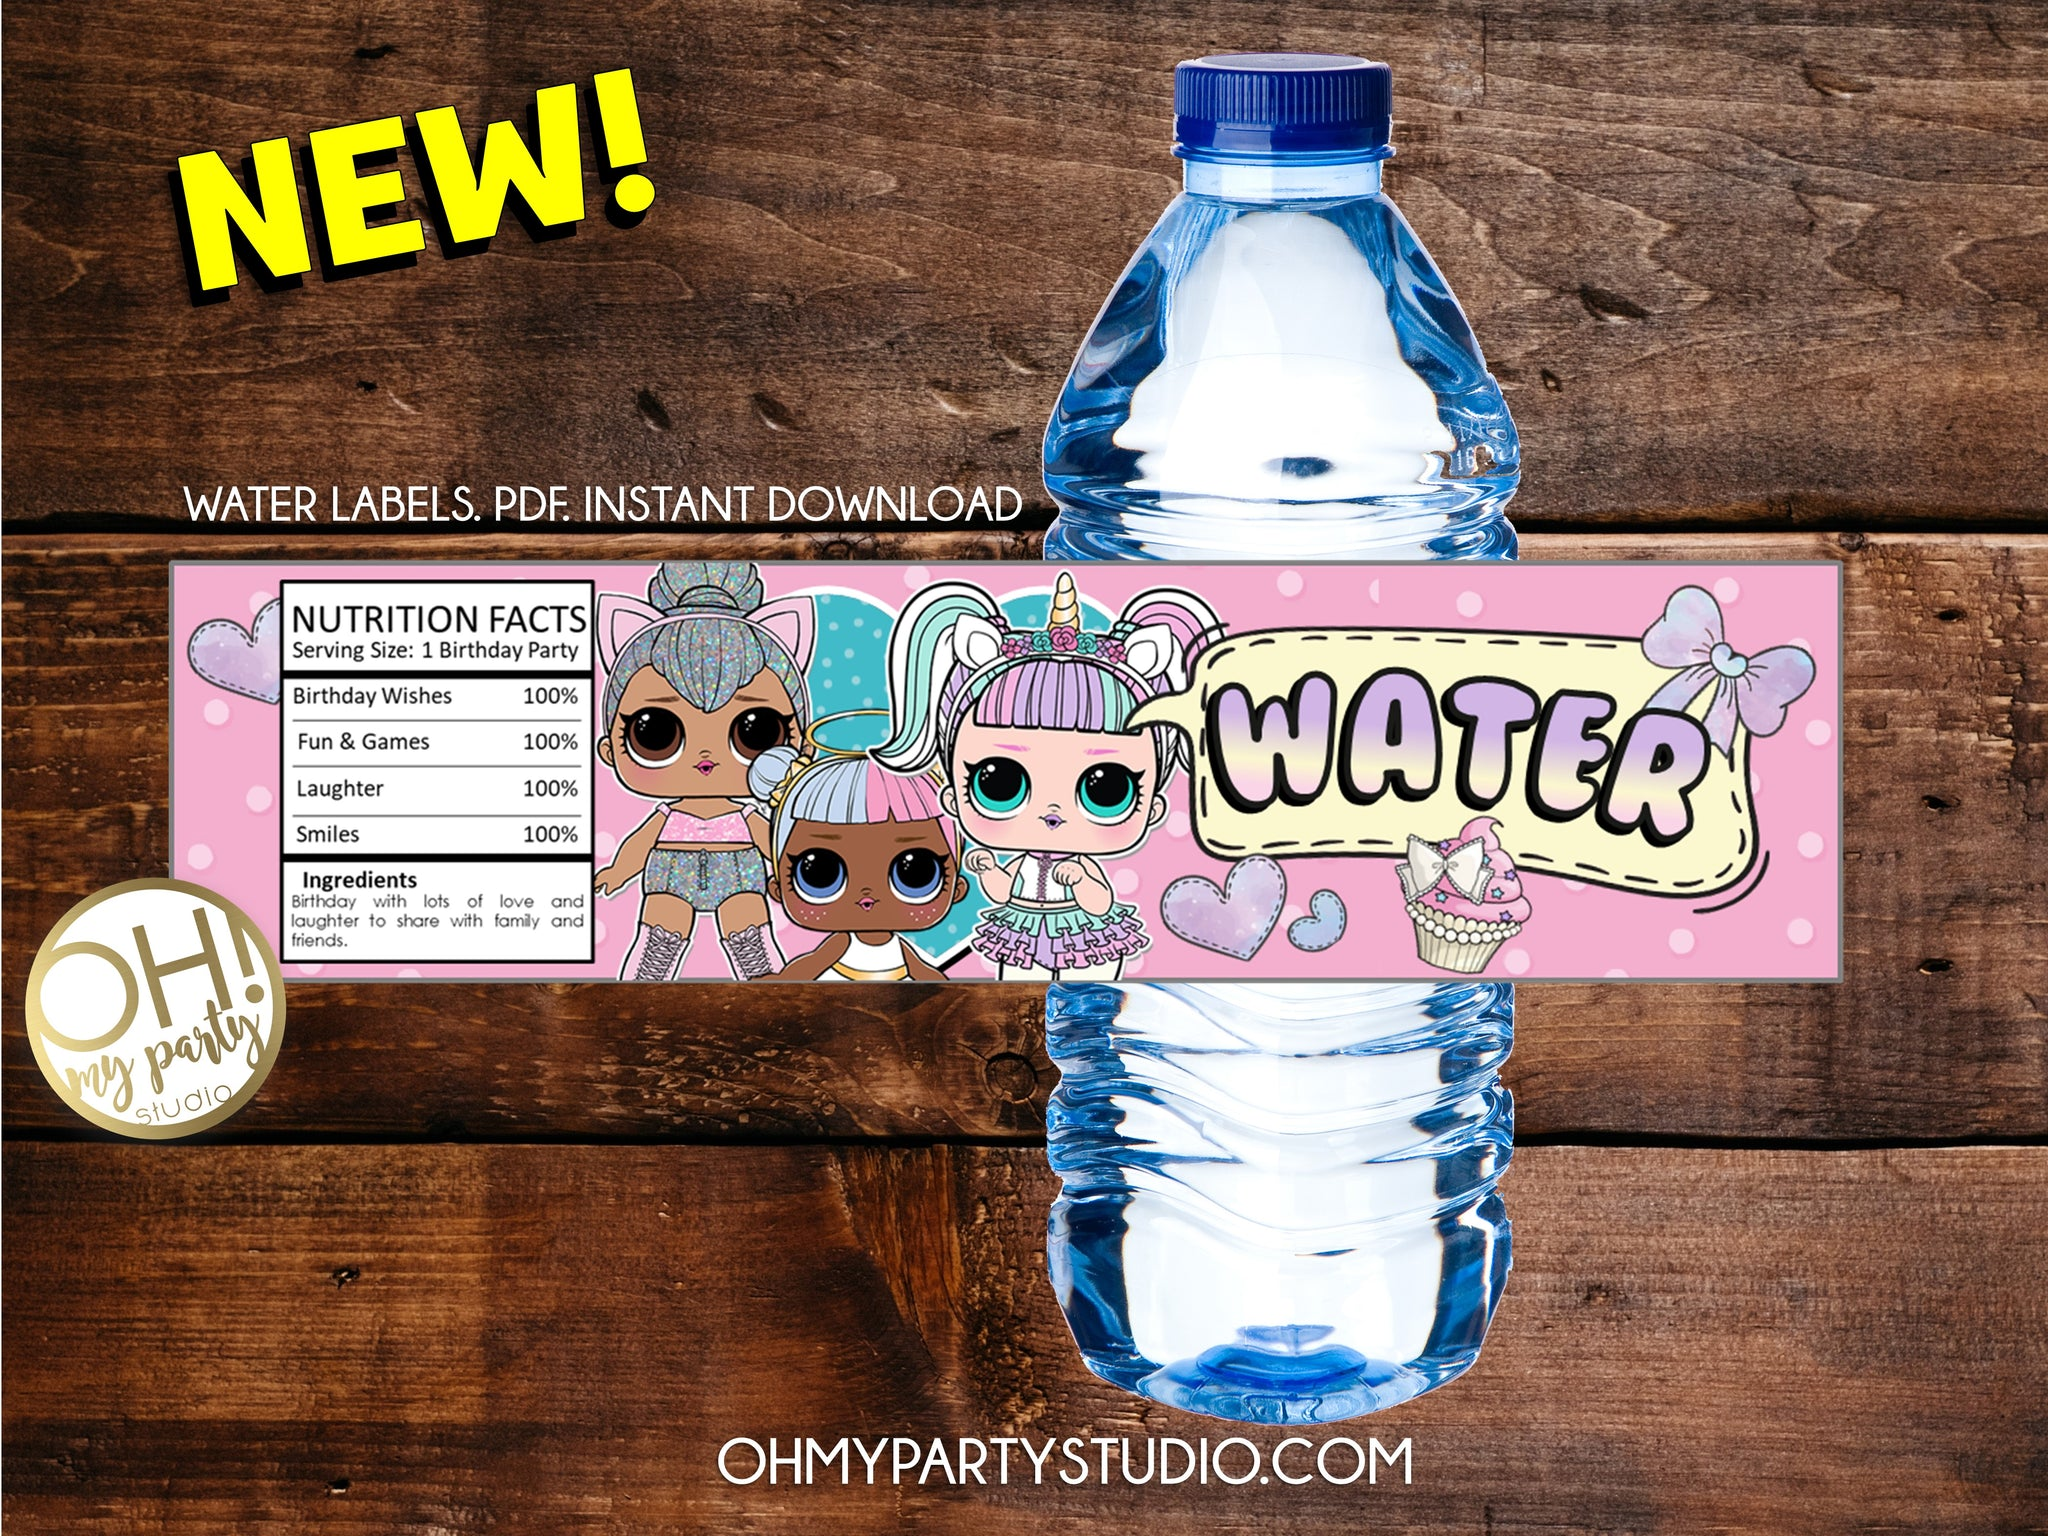 LOL SURPRISE WATER LABELS, LOL SURPRISE PRINTABLES, LOL DOLLS WATER LABELS, LOL DOLLS PRINTABLES, LOL SURPRISE PARTY IDEAS, LOL SURPRISE PARTY THEME, LOL DOLLS PARTY IDEAS, LOL DOLLS DECORATIONS, LOL DOLLS PARTY SUPPLIES, LOL DOLL2 PARTY PRINTABLES, LOL SURPRISE PARTY, LOL SURPRISE BIRTHDAY, LOL SURPRISE PARTY PRINTABLES